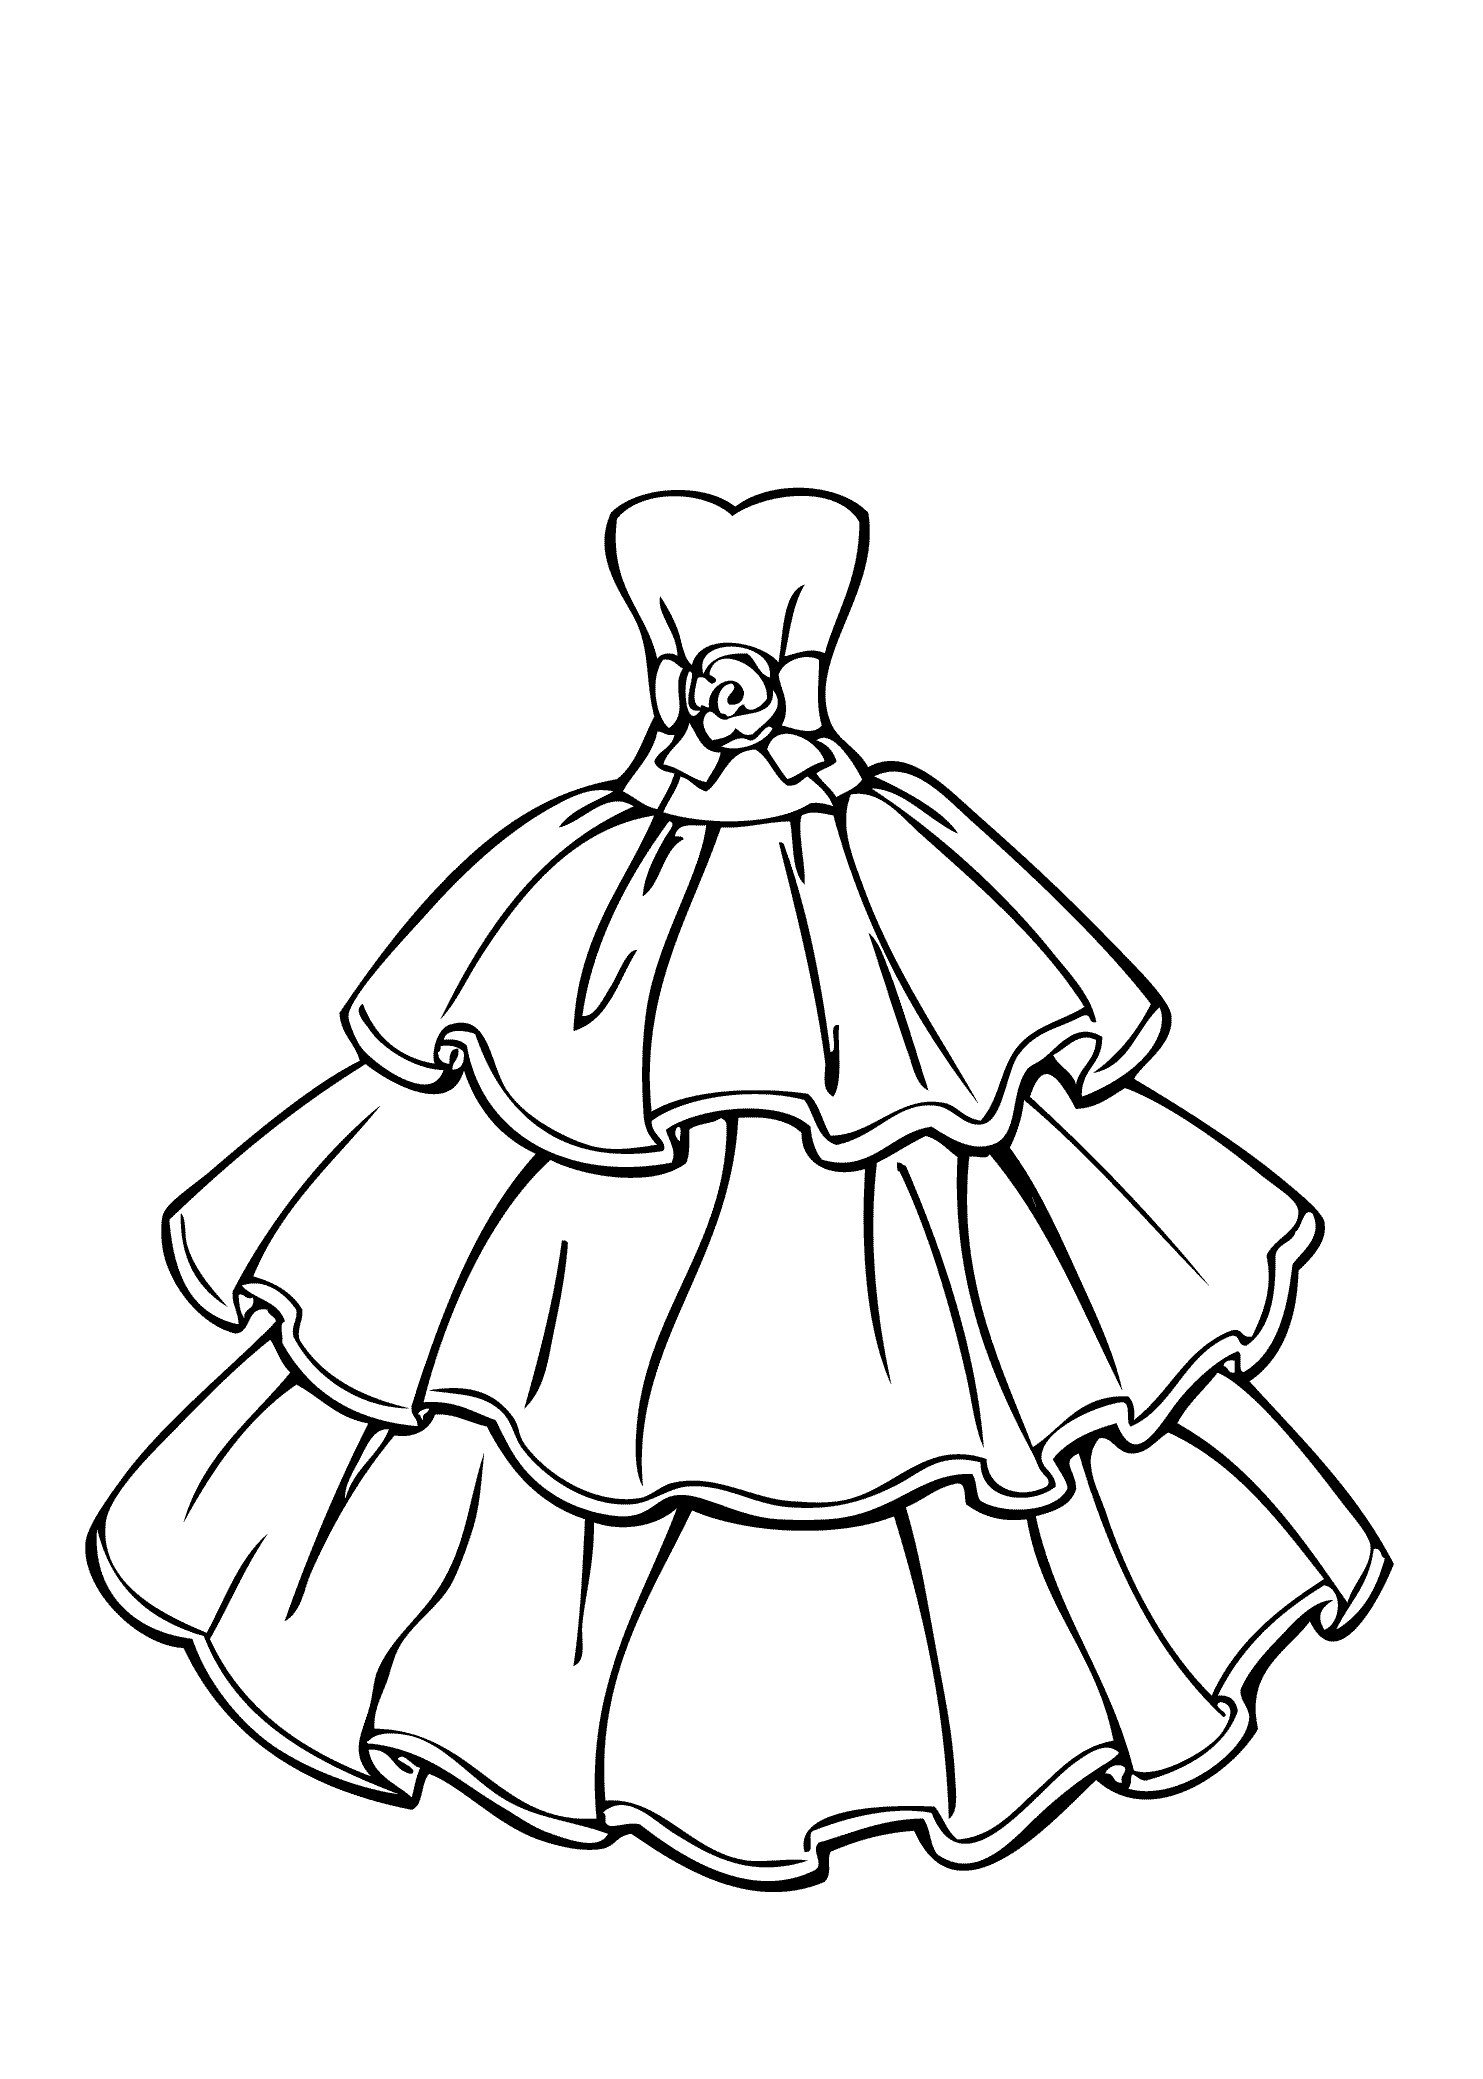 1483x2079 Luxury Coloring Pages Dresses